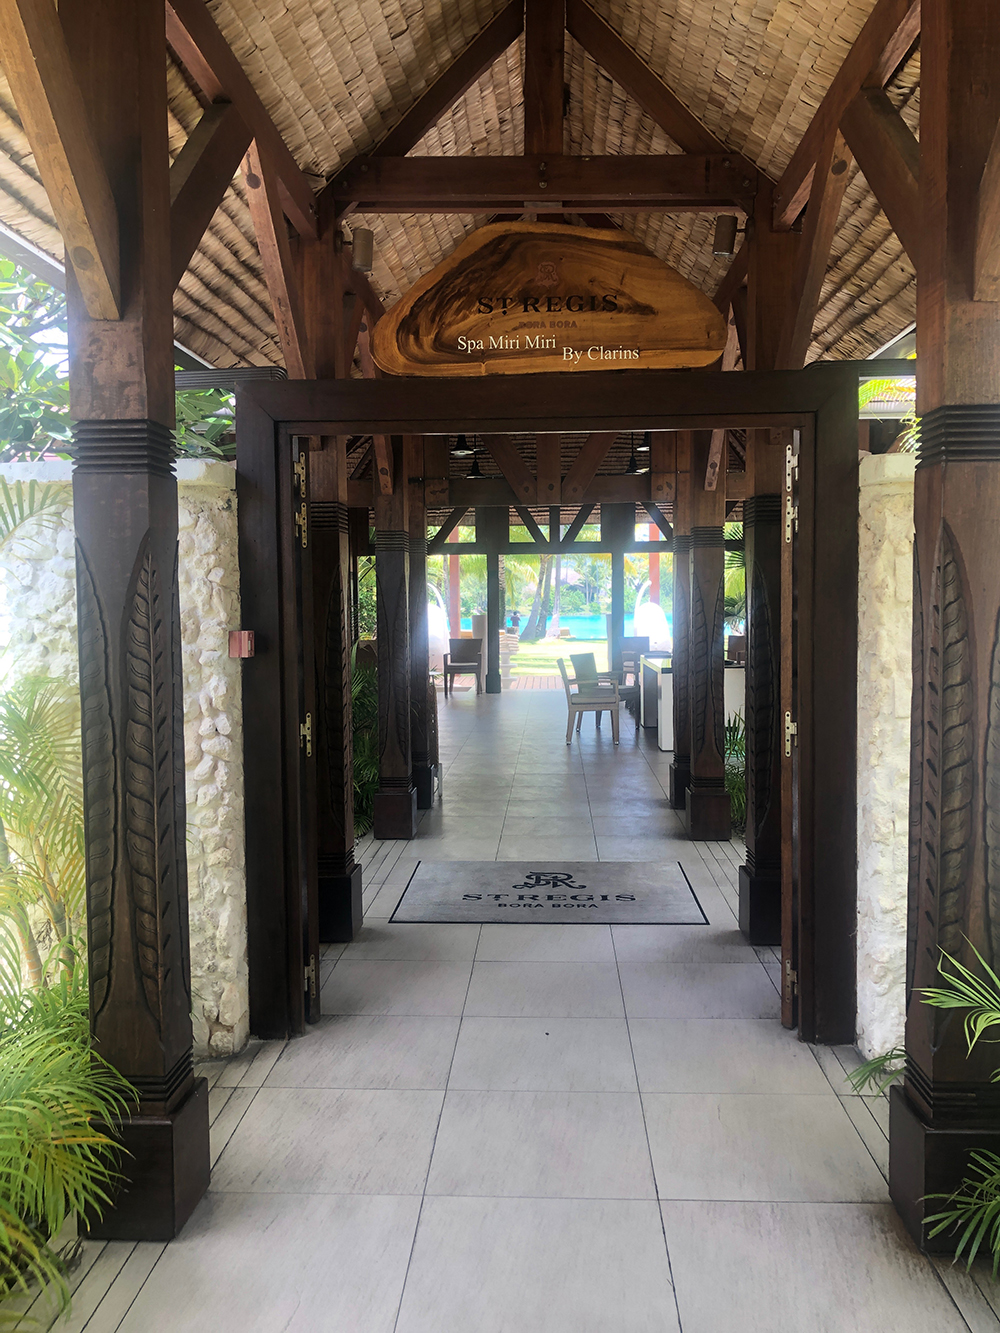 The entrance to Miri Miri Spa by Clarins.